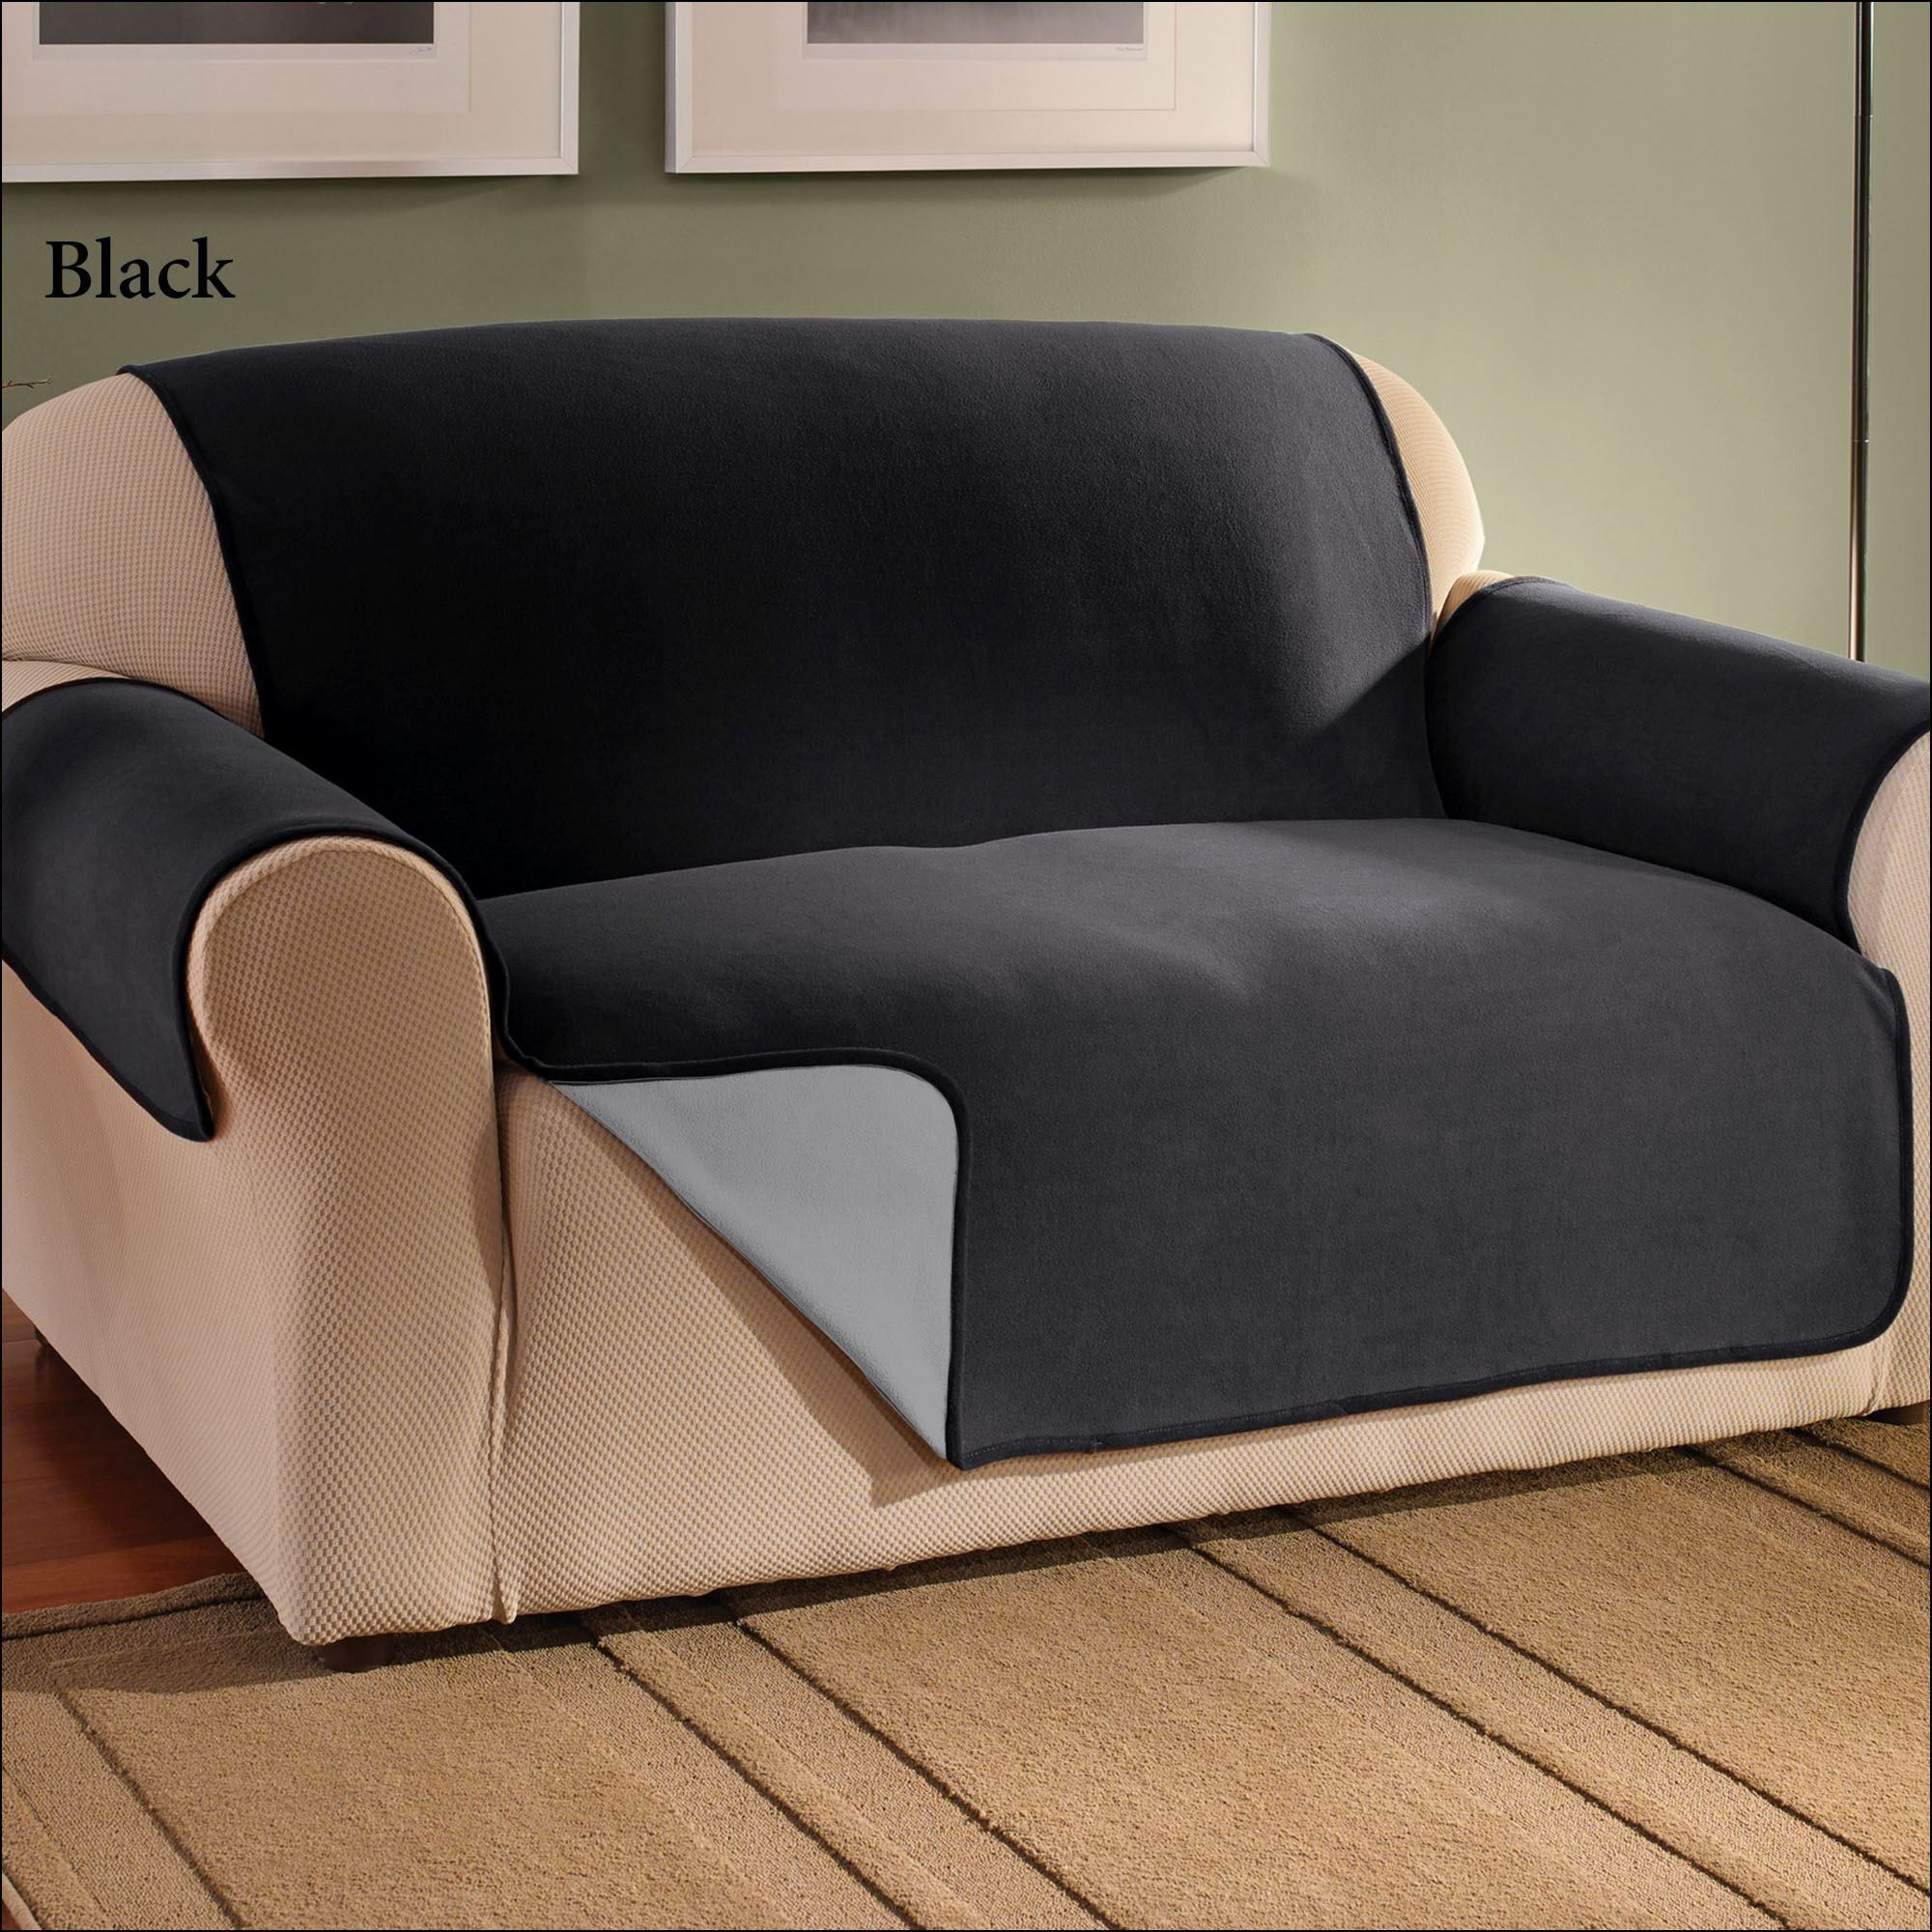 Leather sofa Covers top Couch Covers for Leather sofas Couch sofa Gallery Décor